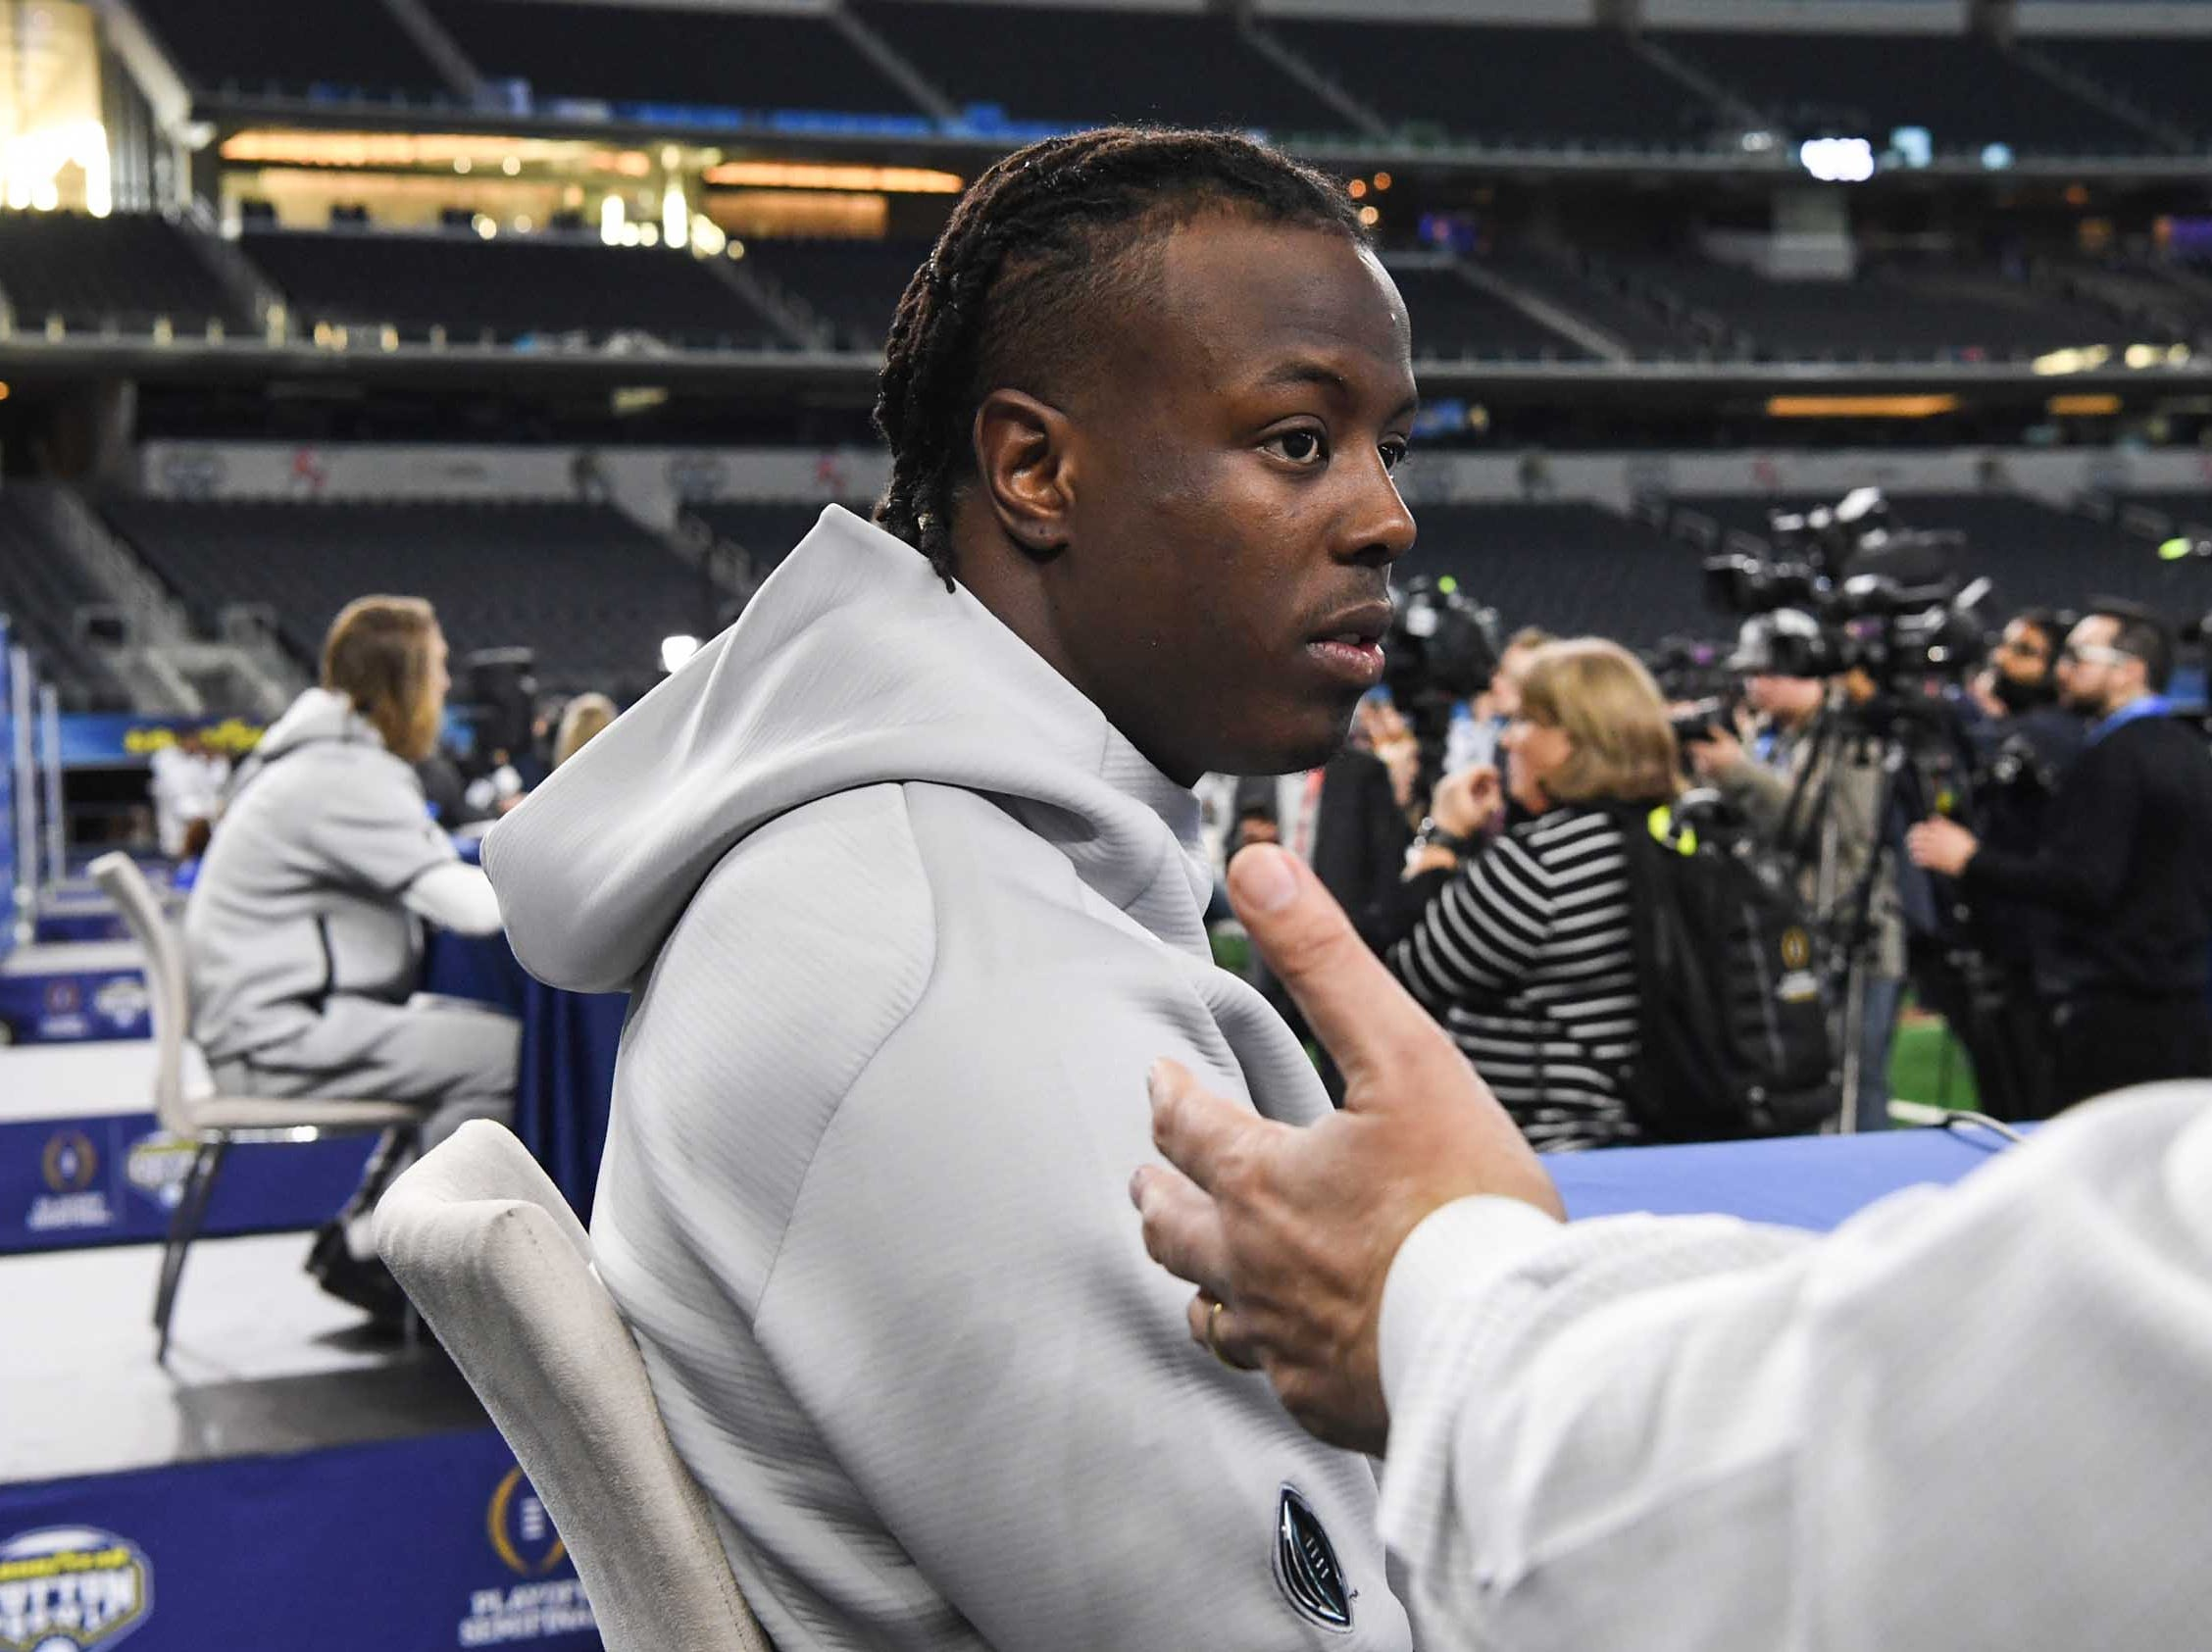 Clemson running back Travis Etienne during Media Day for Clemson and Notre Dame at the AT&T Stadium in Dallas December 27, 2018.